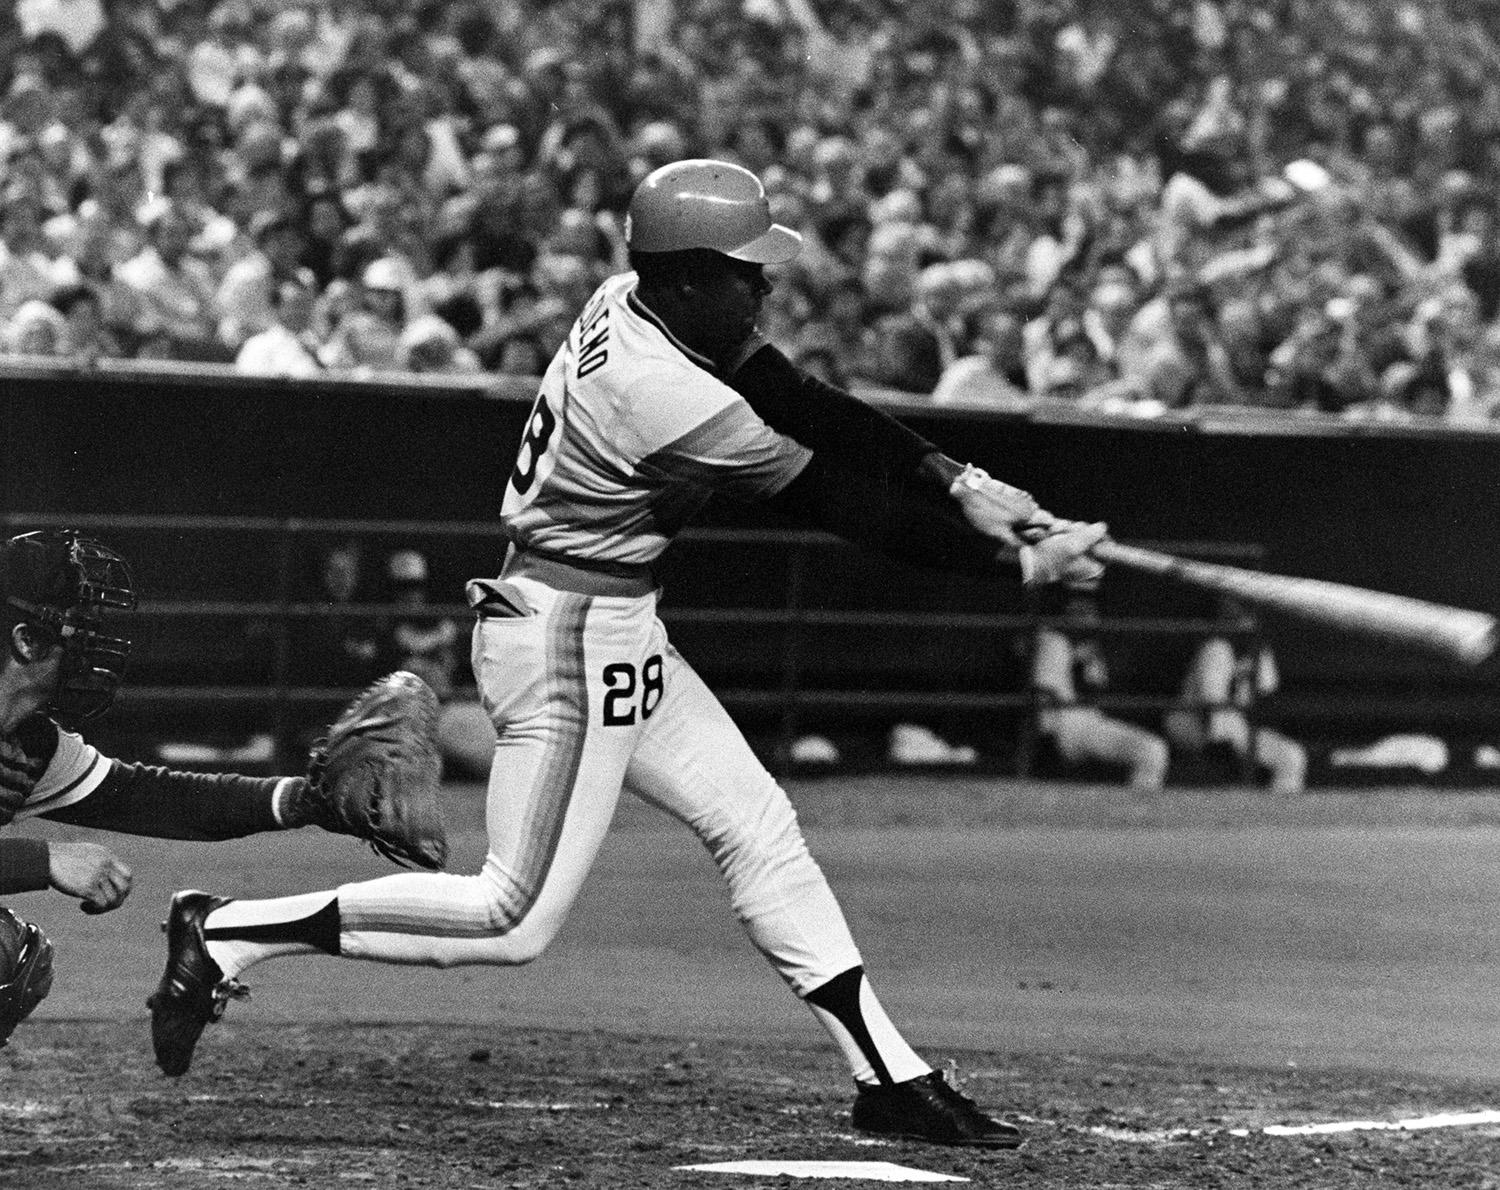 César Cedeño led all of baseball in doubles for two consecutive seasons (1971-72) during his stint with the Houston Astros. (National Baseball Hall of Fame and Museum)